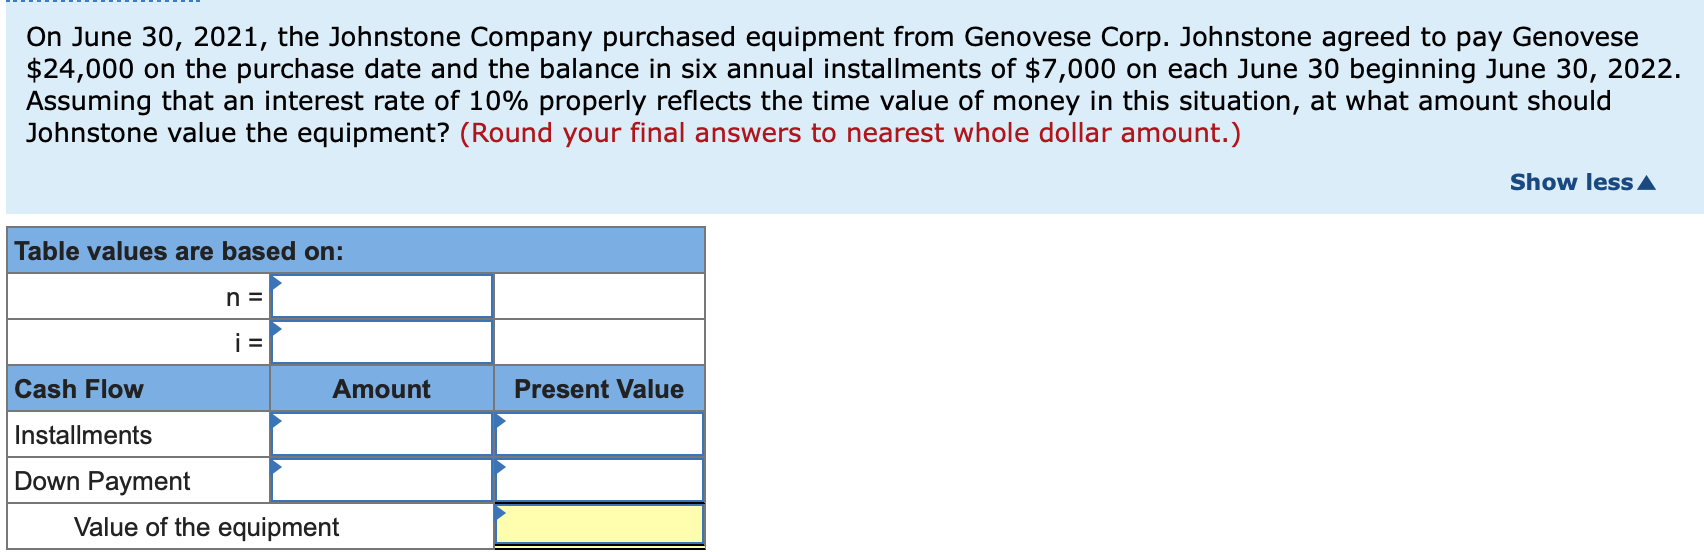 On June 30, 2021, the Johnstone Company purchased equipment from Genovese Corp. Johnstone agreed to pay Genovese $24,000 on t